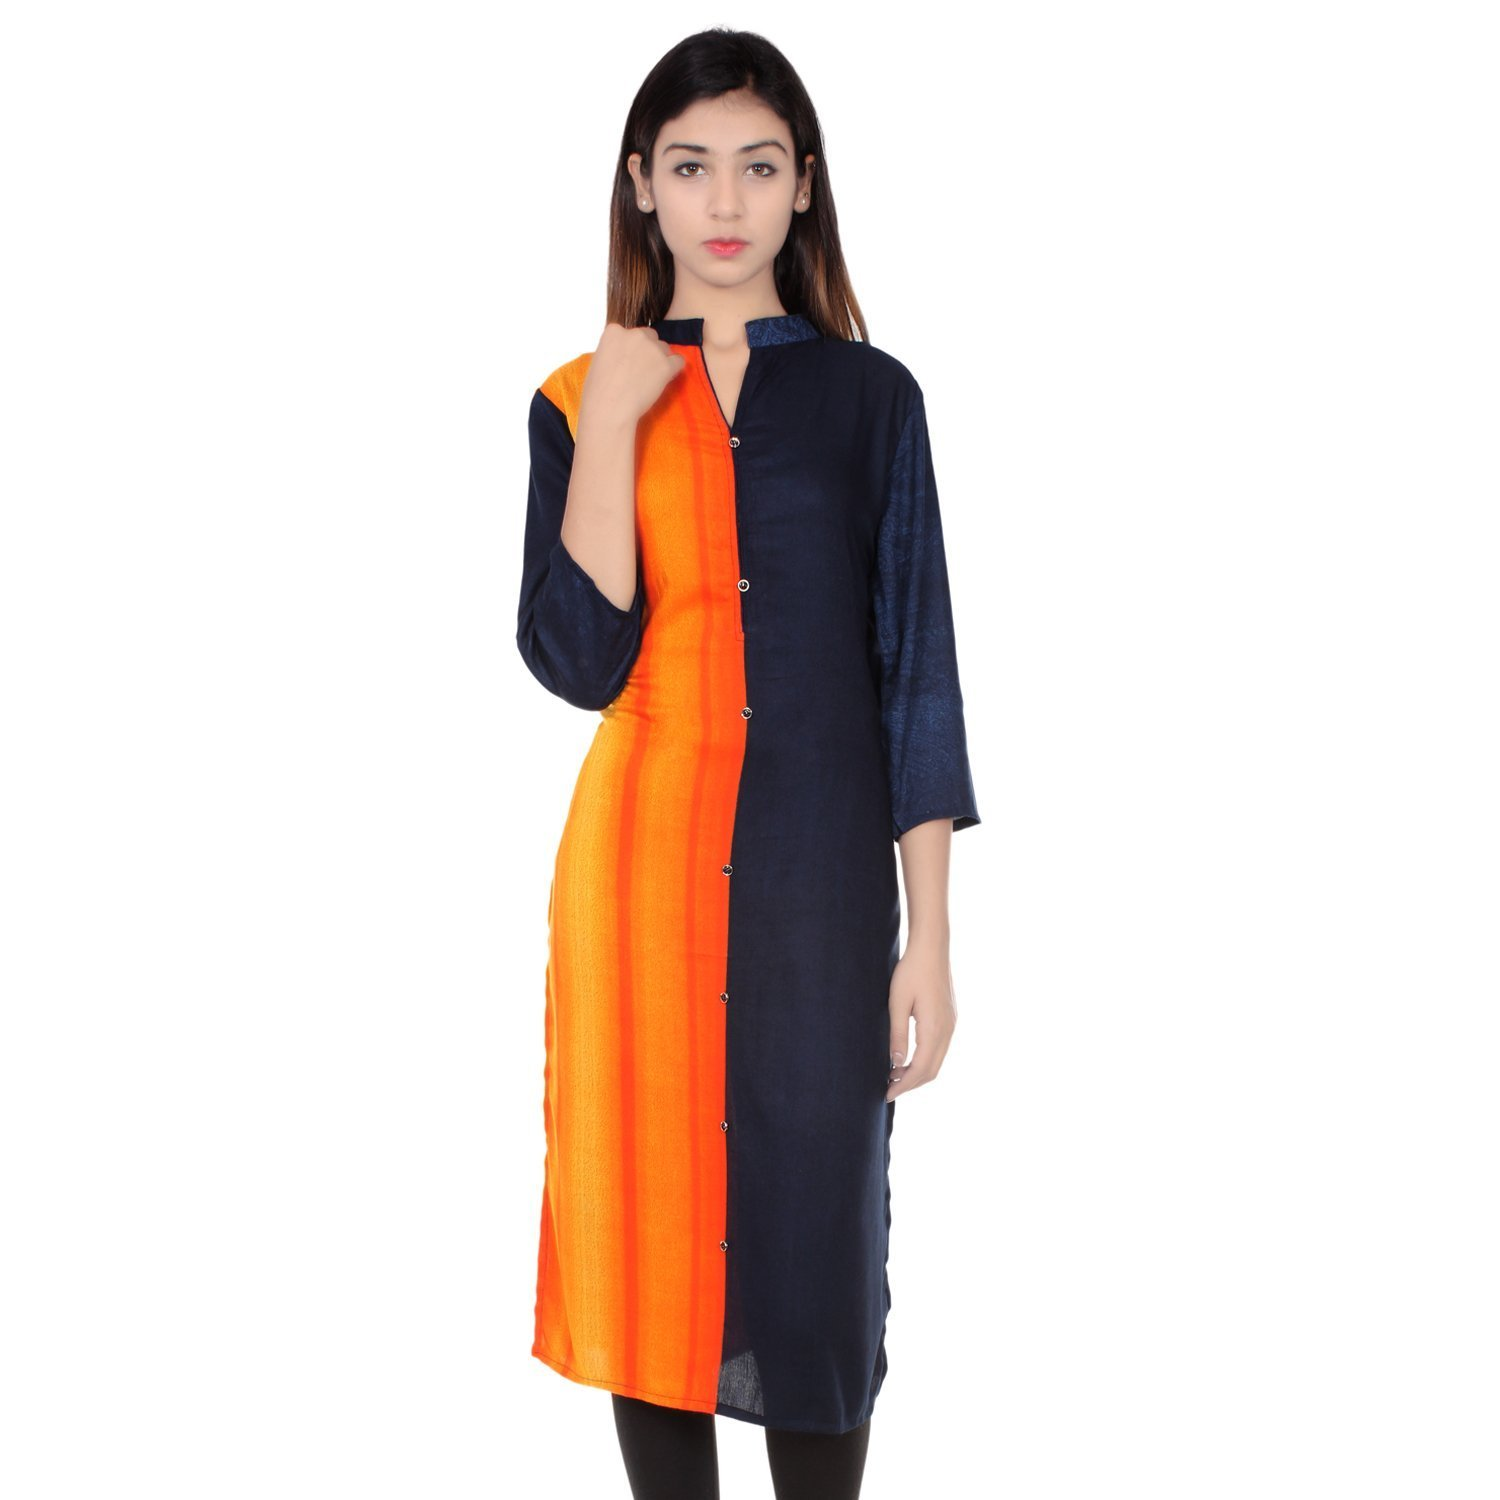 Chichi Indian Women Kurta Kurti 3/4 Sleeve Small Size Plain with Parted Black and Yellow Color Straight Black-Yellow Top